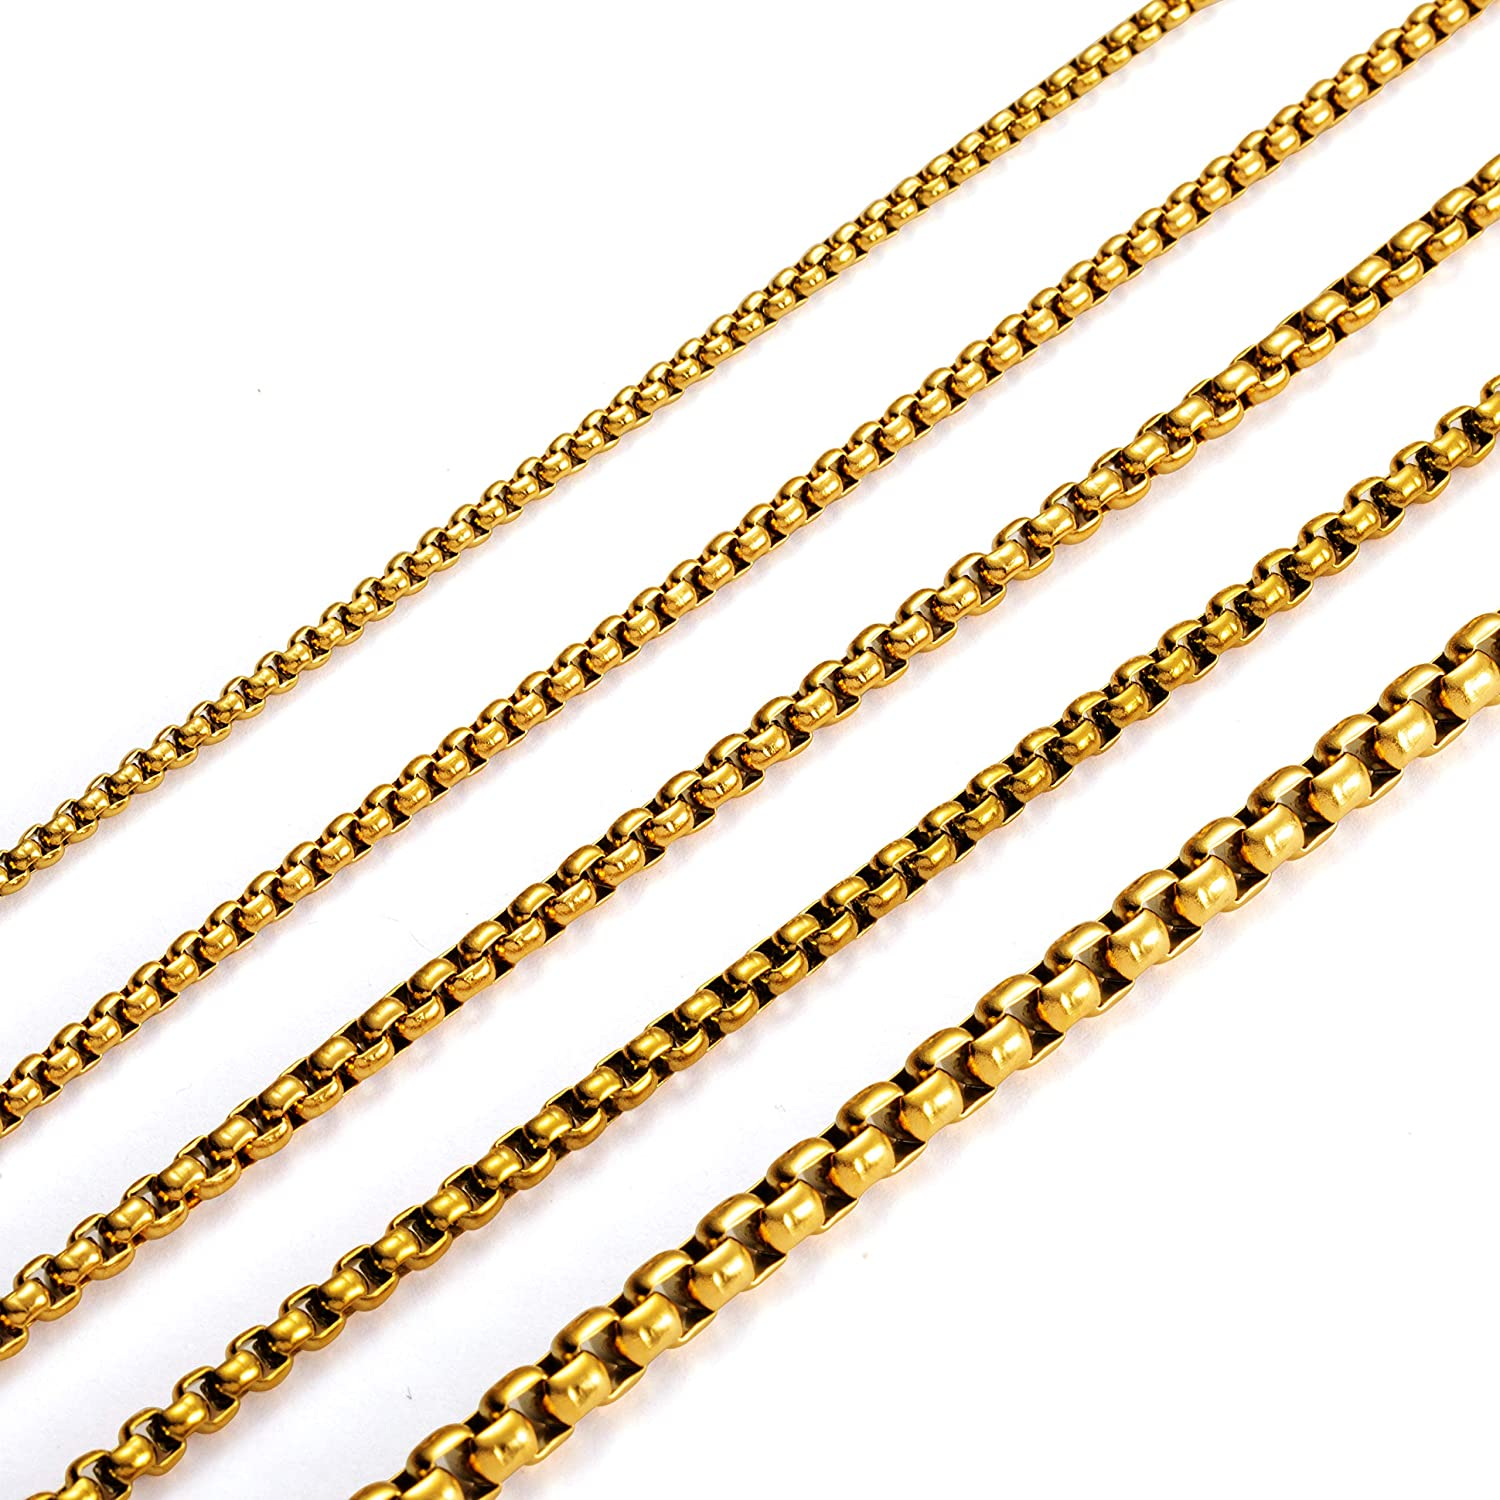 MEMGIFT 18K Real Gold Plated Box Chain Necklaces for Women Men Teen Girls Boys Stainless Steel Long 16-28 Inches Width 2.5-5MM Box Link Simple Jewelry Gifts for Mom Dad Best Friend Sister Wife